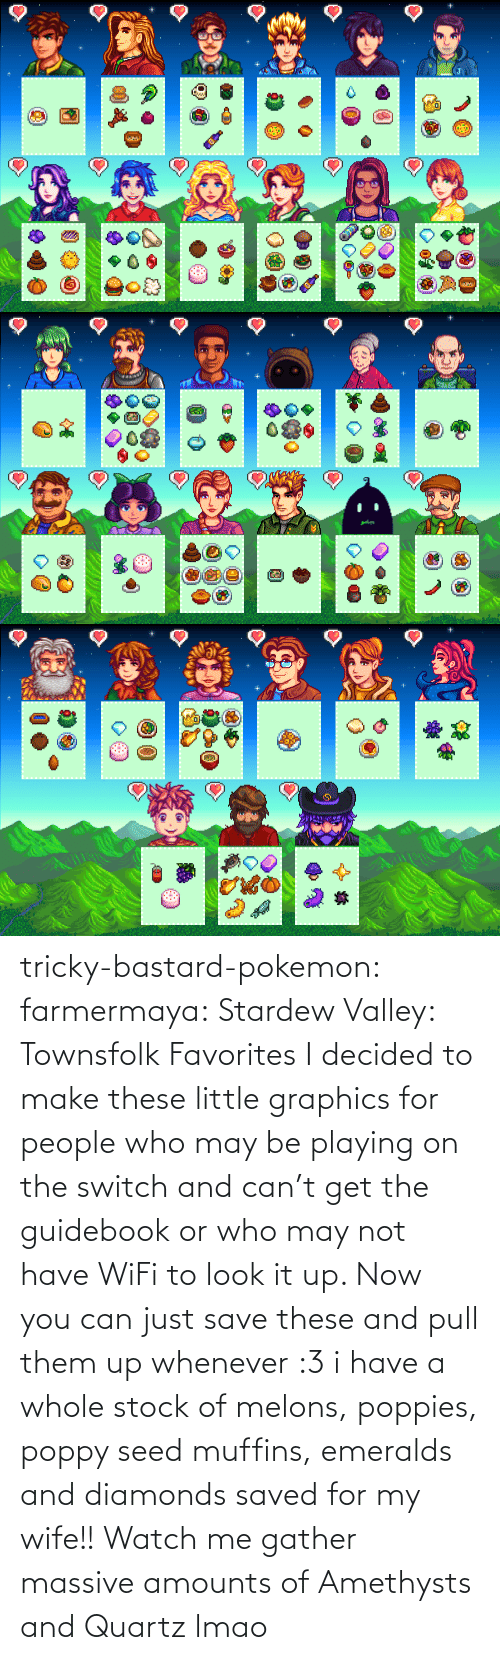 whenever: tricky-bastard-pokemon:  farmermaya: Stardew Valley: Townsfolk Favorites  I decided to make these little graphics for people who may be playing on the switch and can't get the guidebook or who may not have WiFi to look it up. Now you can just save these and pull them up whenever :3   i have a whole stock of melons, poppies, poppy seed muffins, emeralds and diamonds saved for my wife!!    Watch me gather massive amounts of Amethysts and Quartz lmao